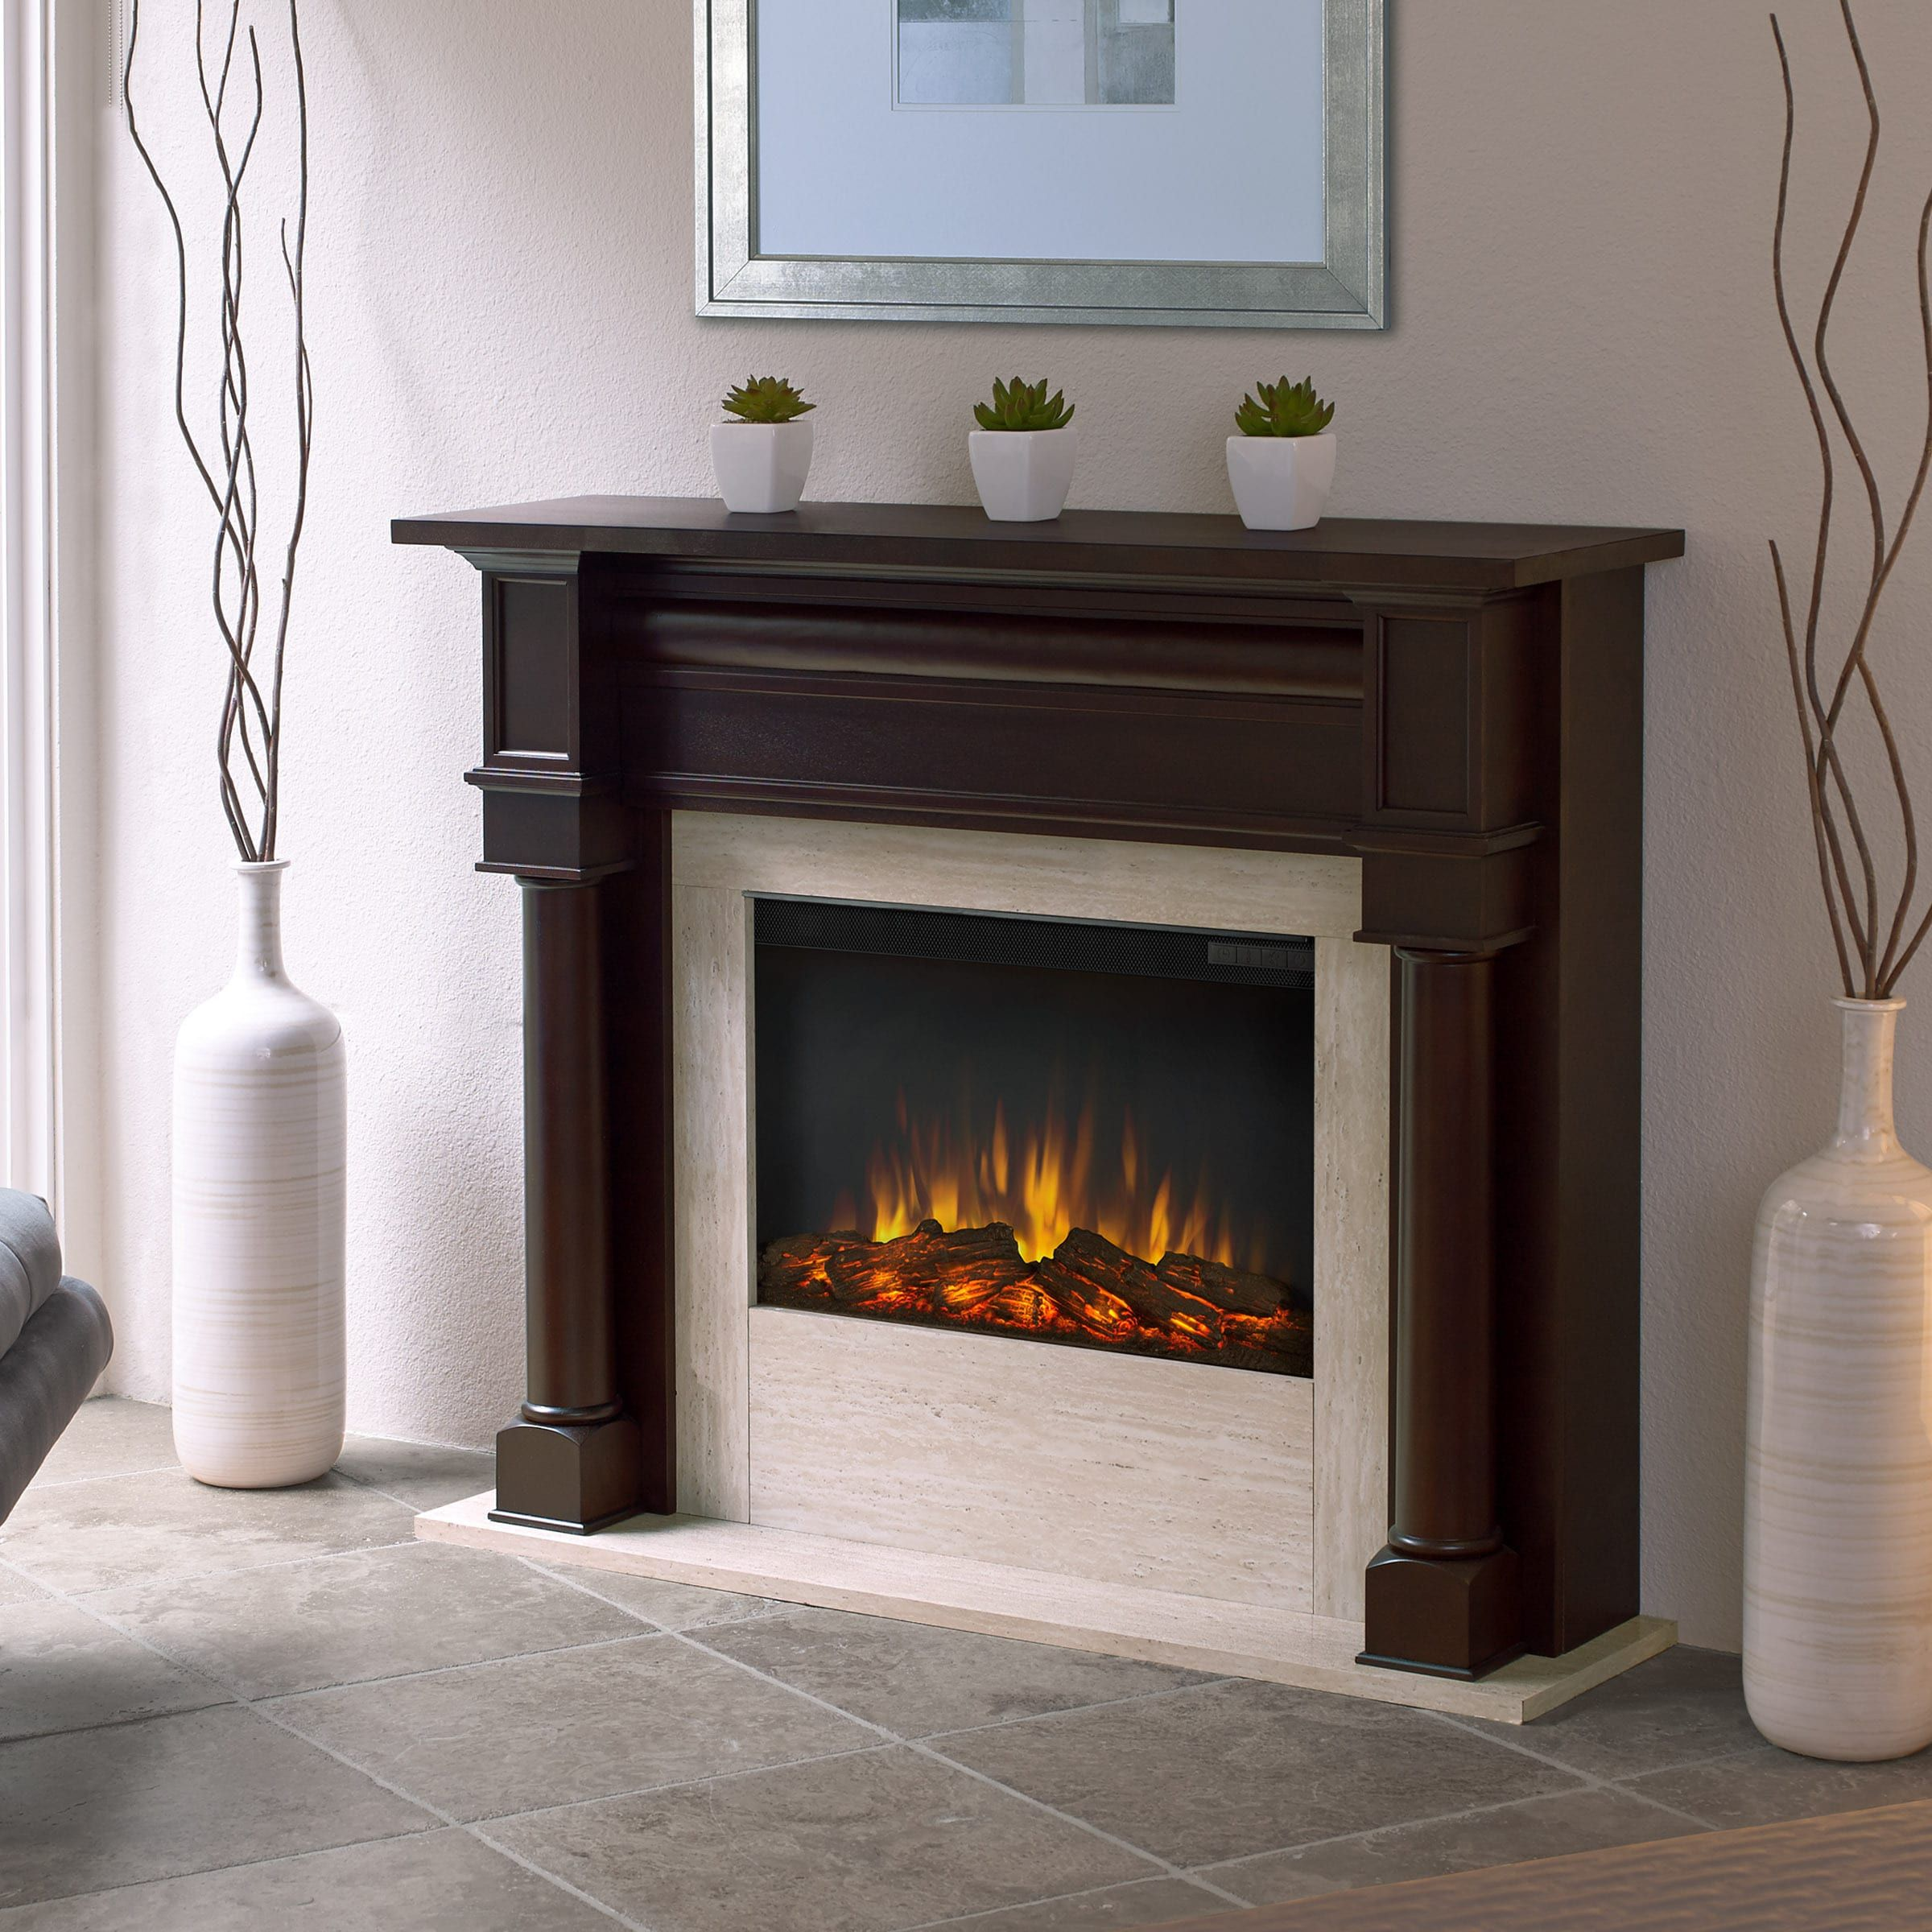 real flame berkeley dark walnut 47 in l x 12 3 in d x 40 1 in h